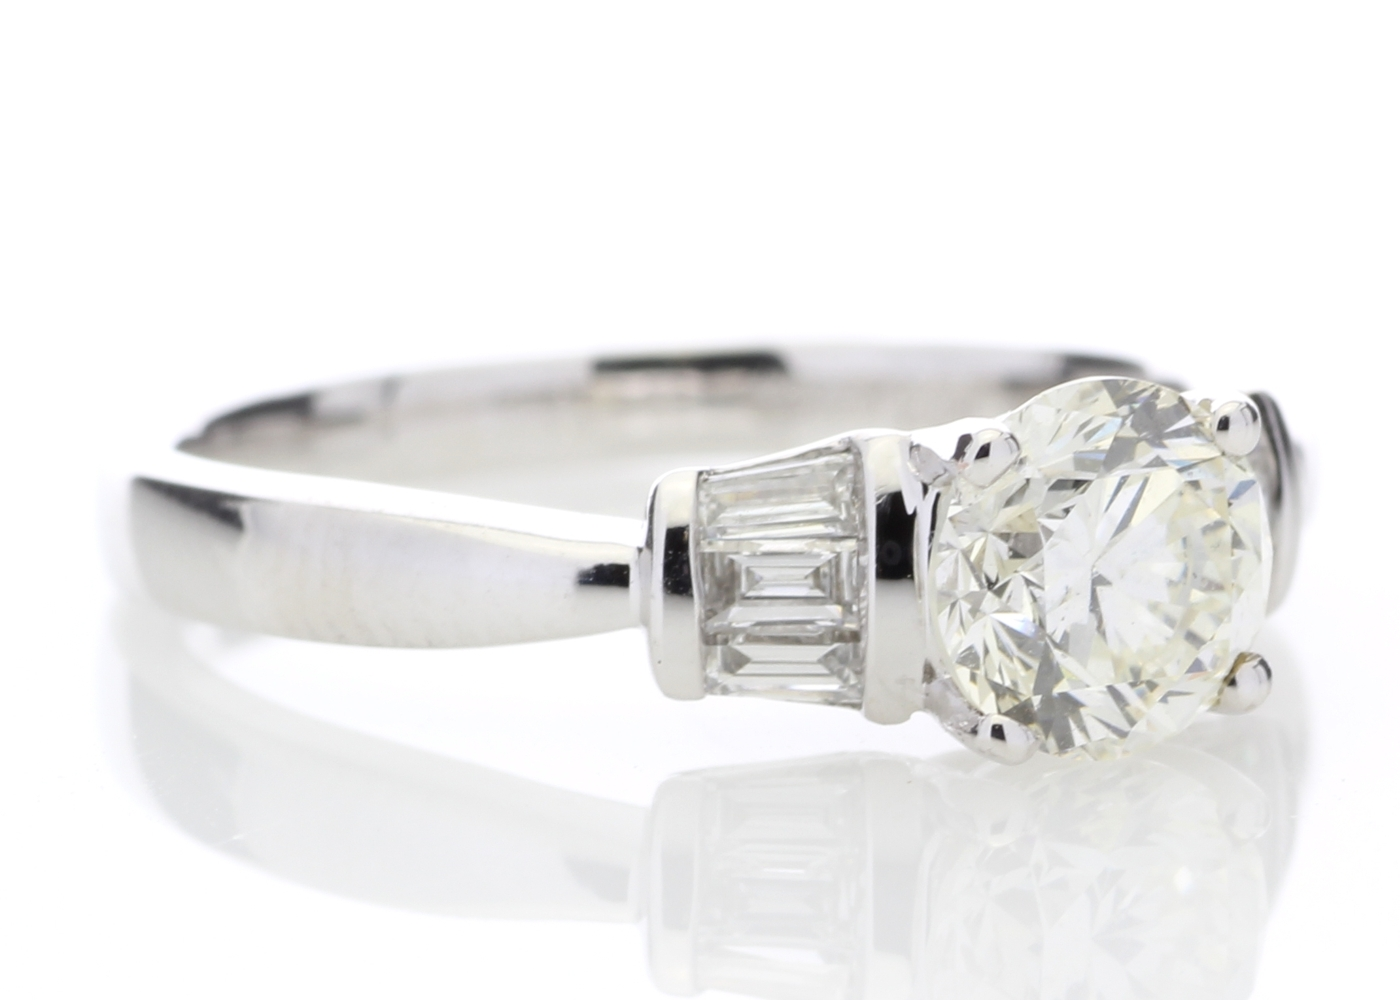 18ct White Gold Baguette Set Shoulders Diamond Ring 1.26 Carats - Image 4 of 4